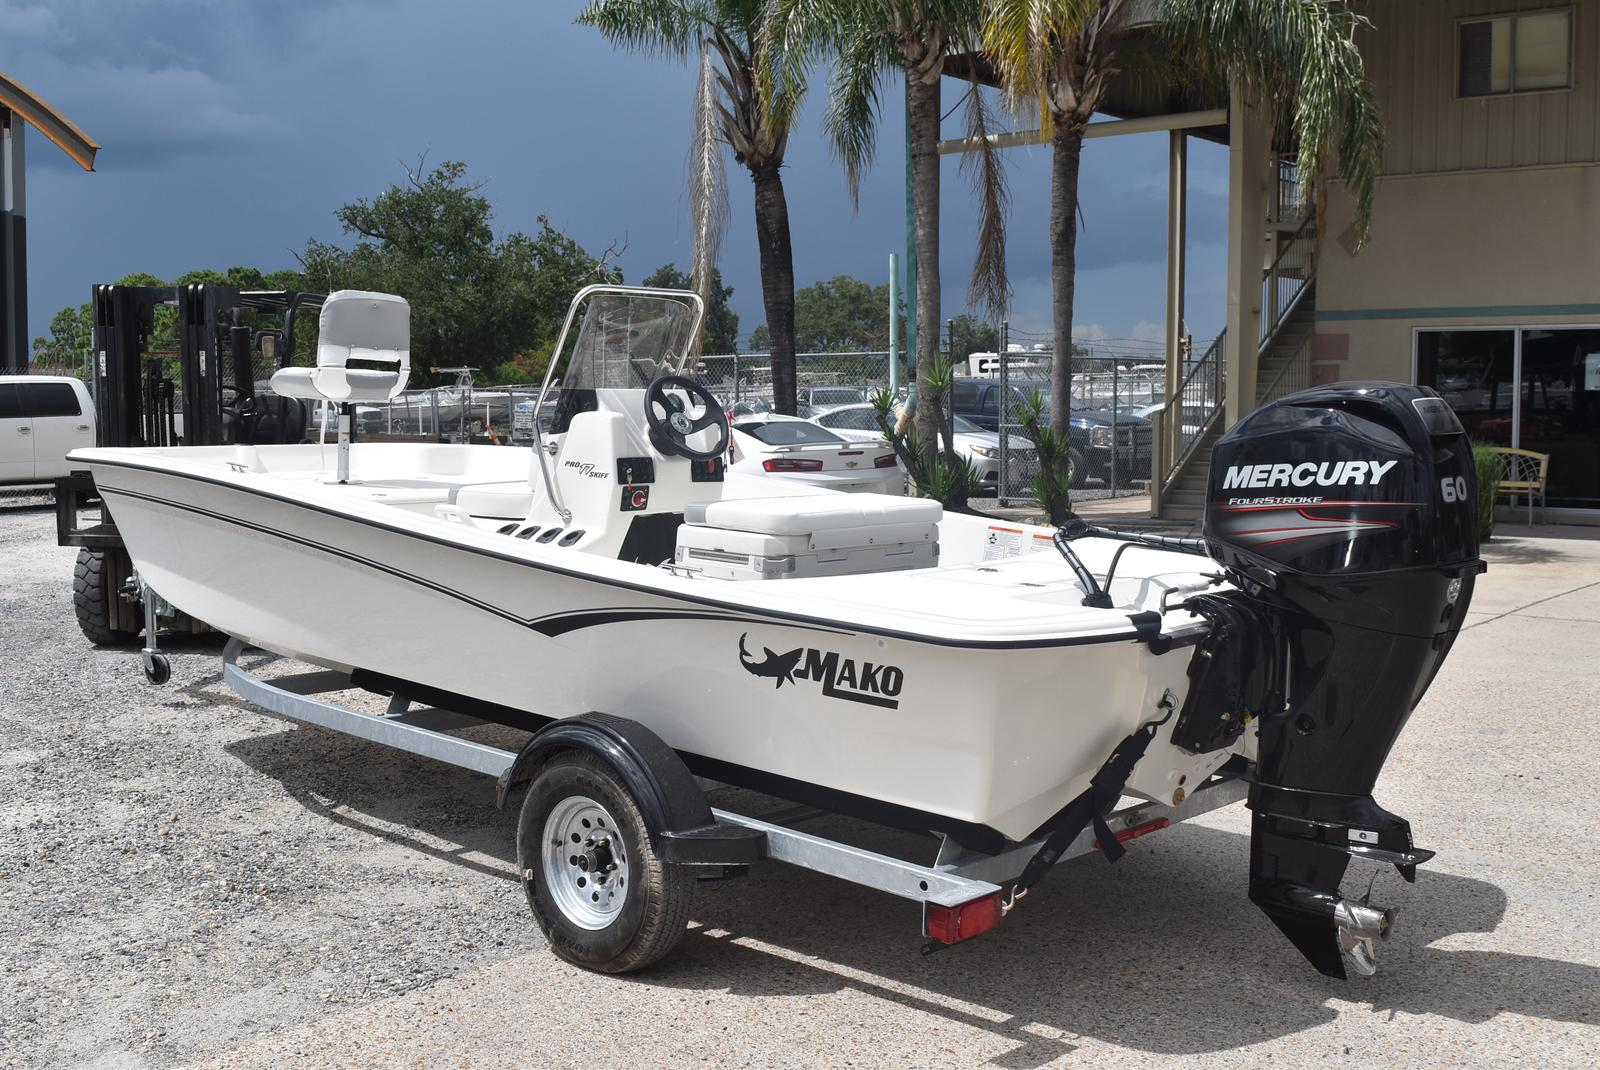 2020 Mako boat for sale, model of the boat is Pro Skiff 17, 75 ELPT & Image # 163 of 702